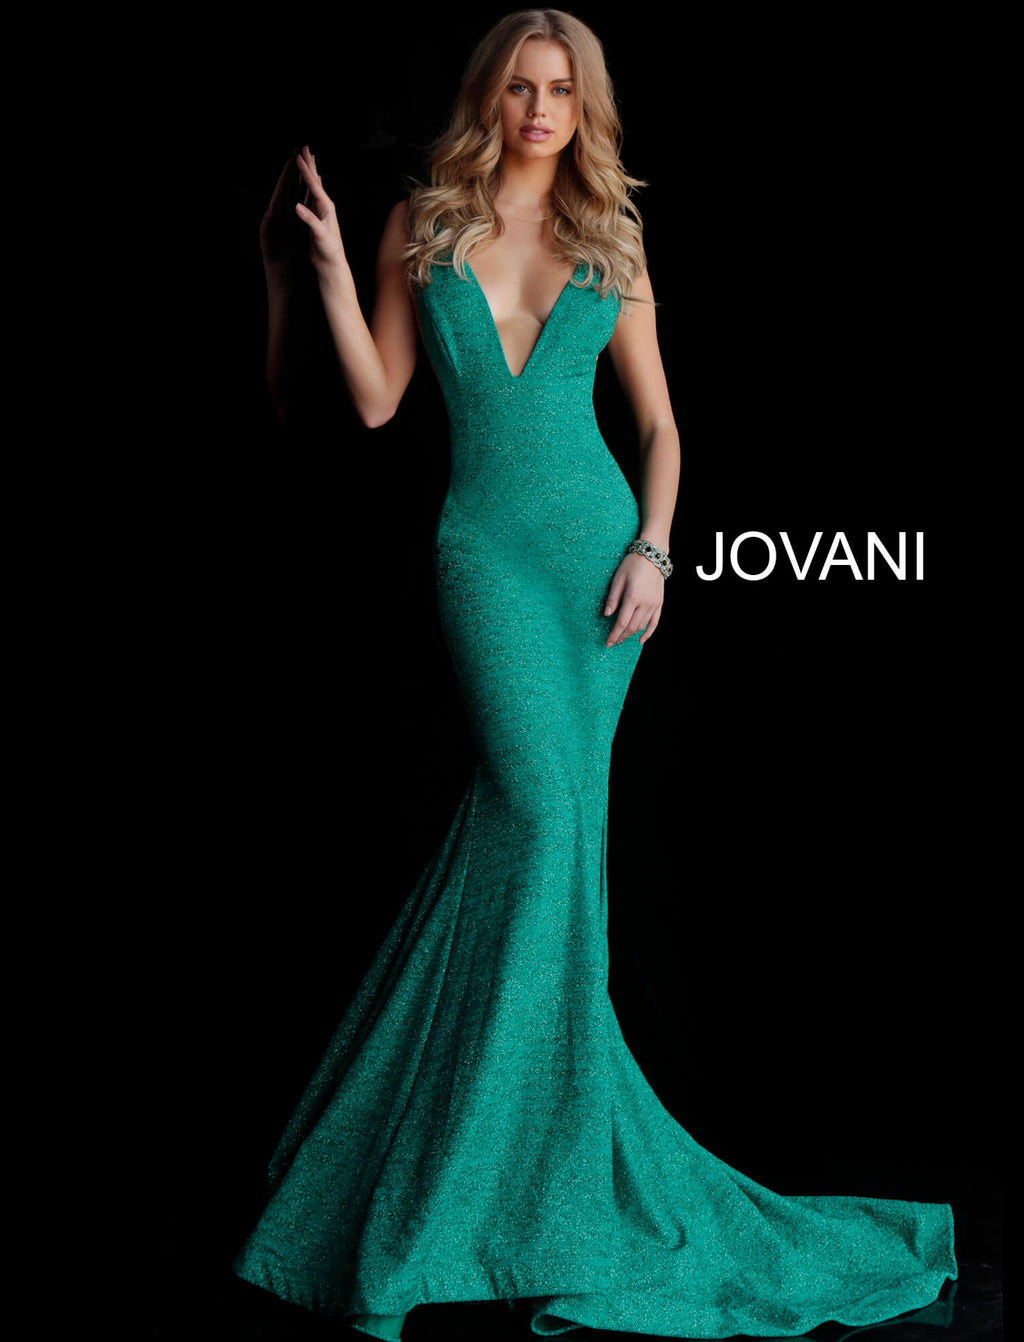 Jovani Jade Plunging Gown